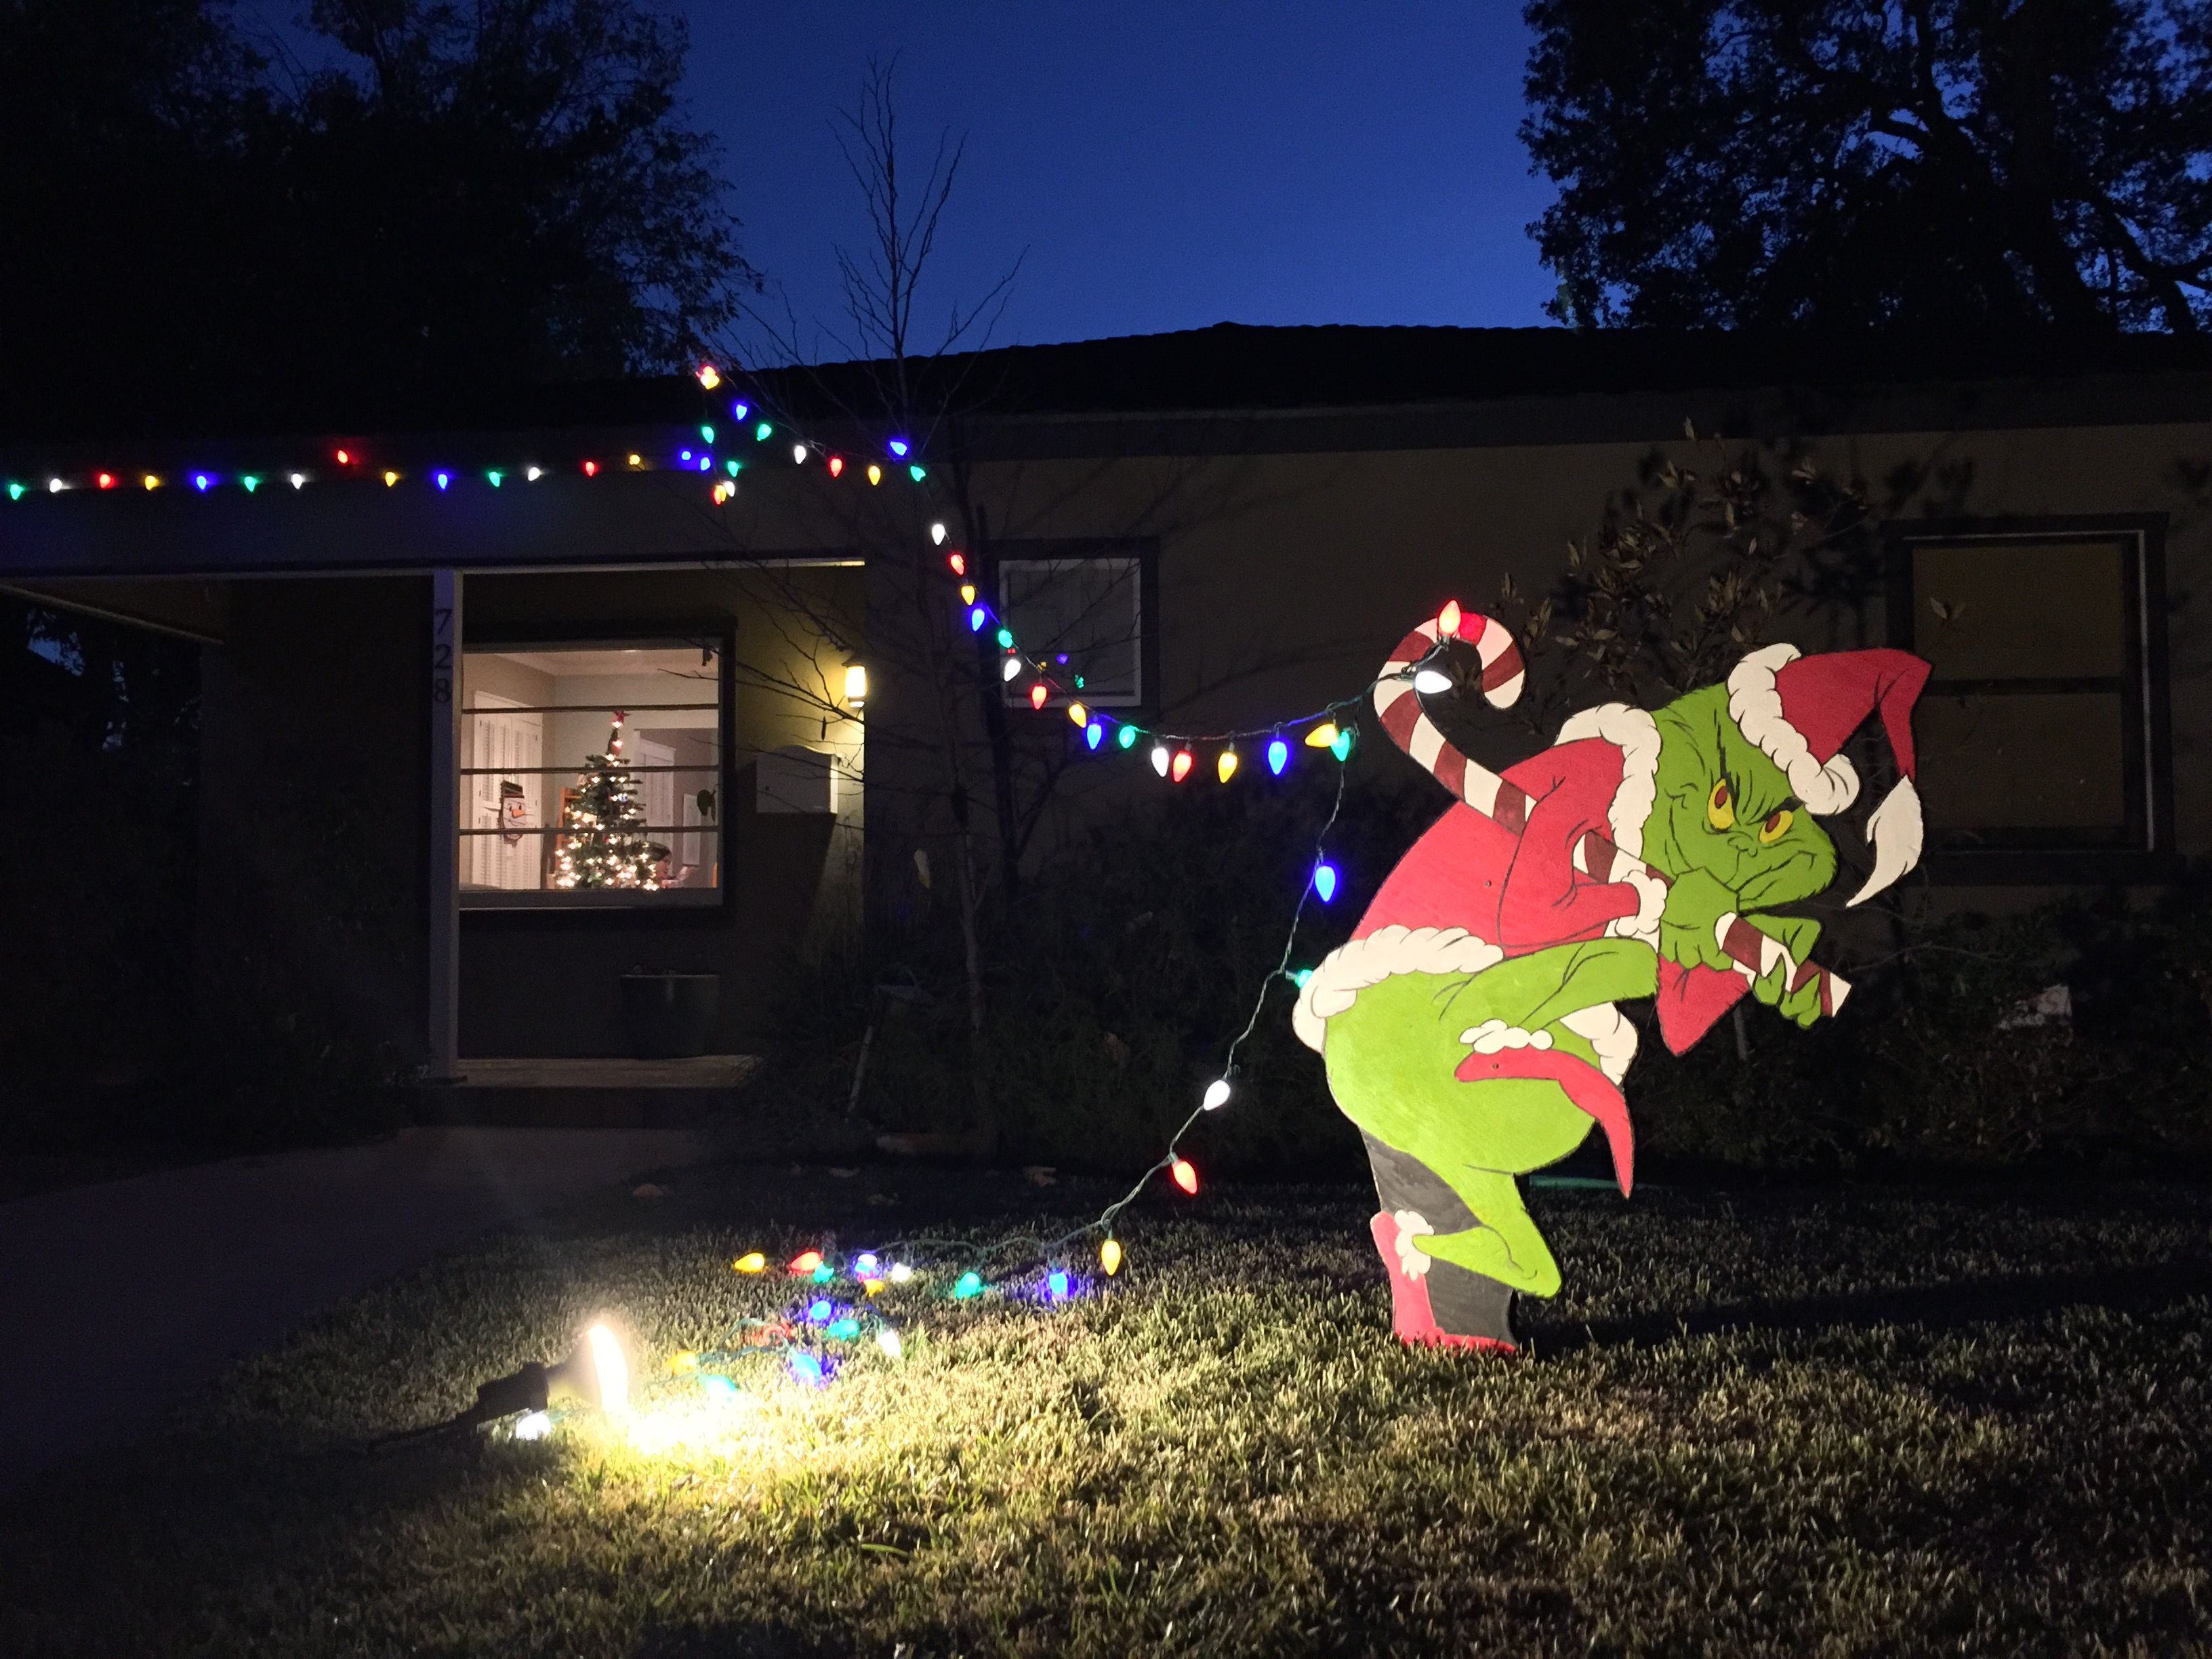 Grinch stealing lights christmas decorations - The Grinch Is Stealing My Christmas Lights